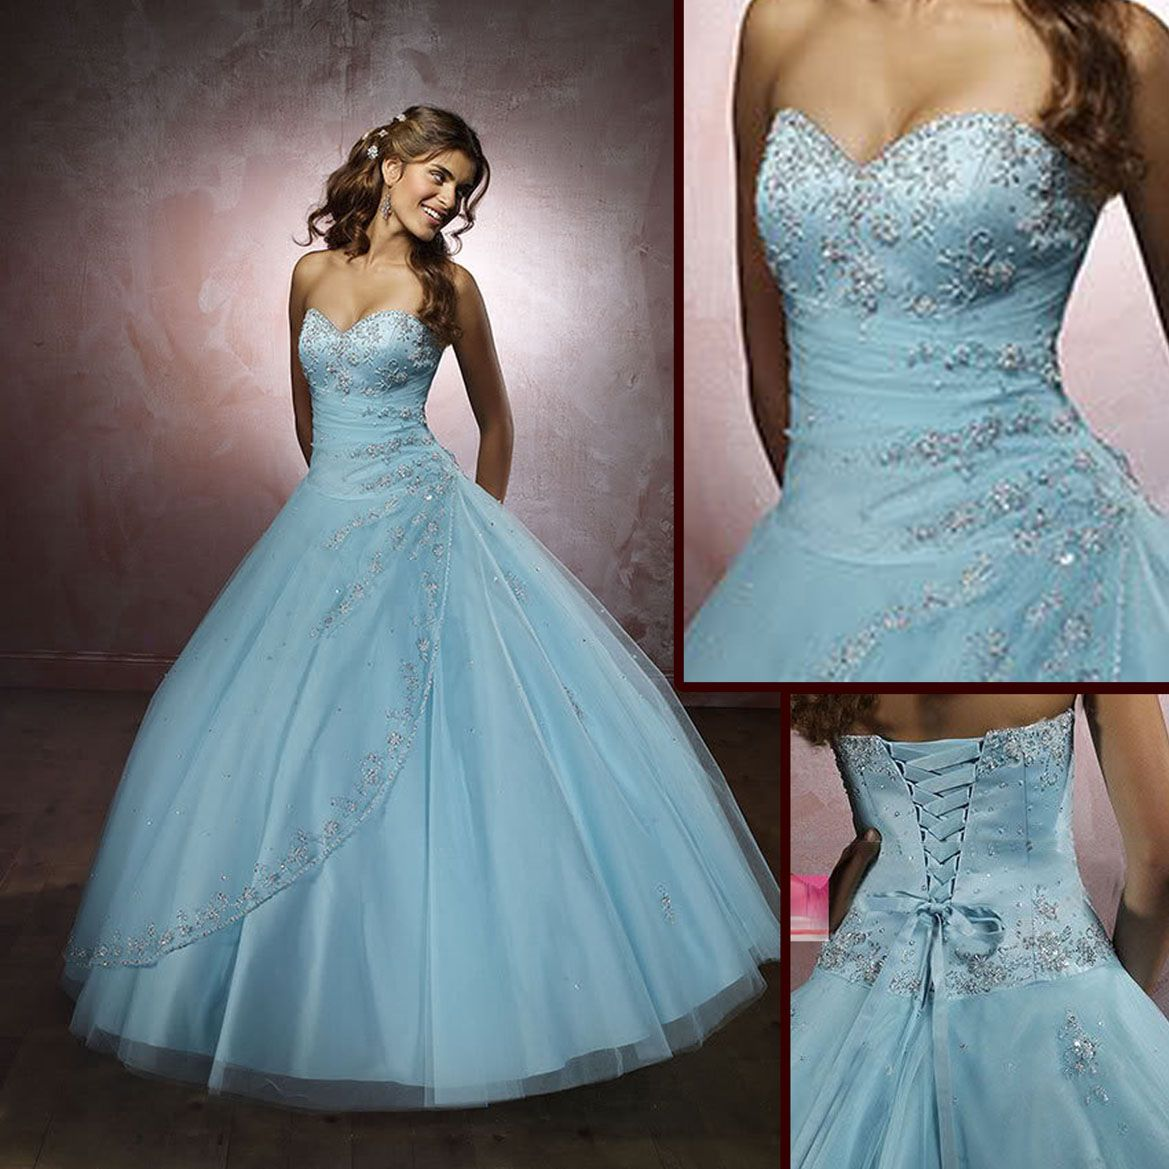 wedding dresses with blue flowing light blue wedding dresses Archives The Wedding SpecialistsThe Wedding Specialists